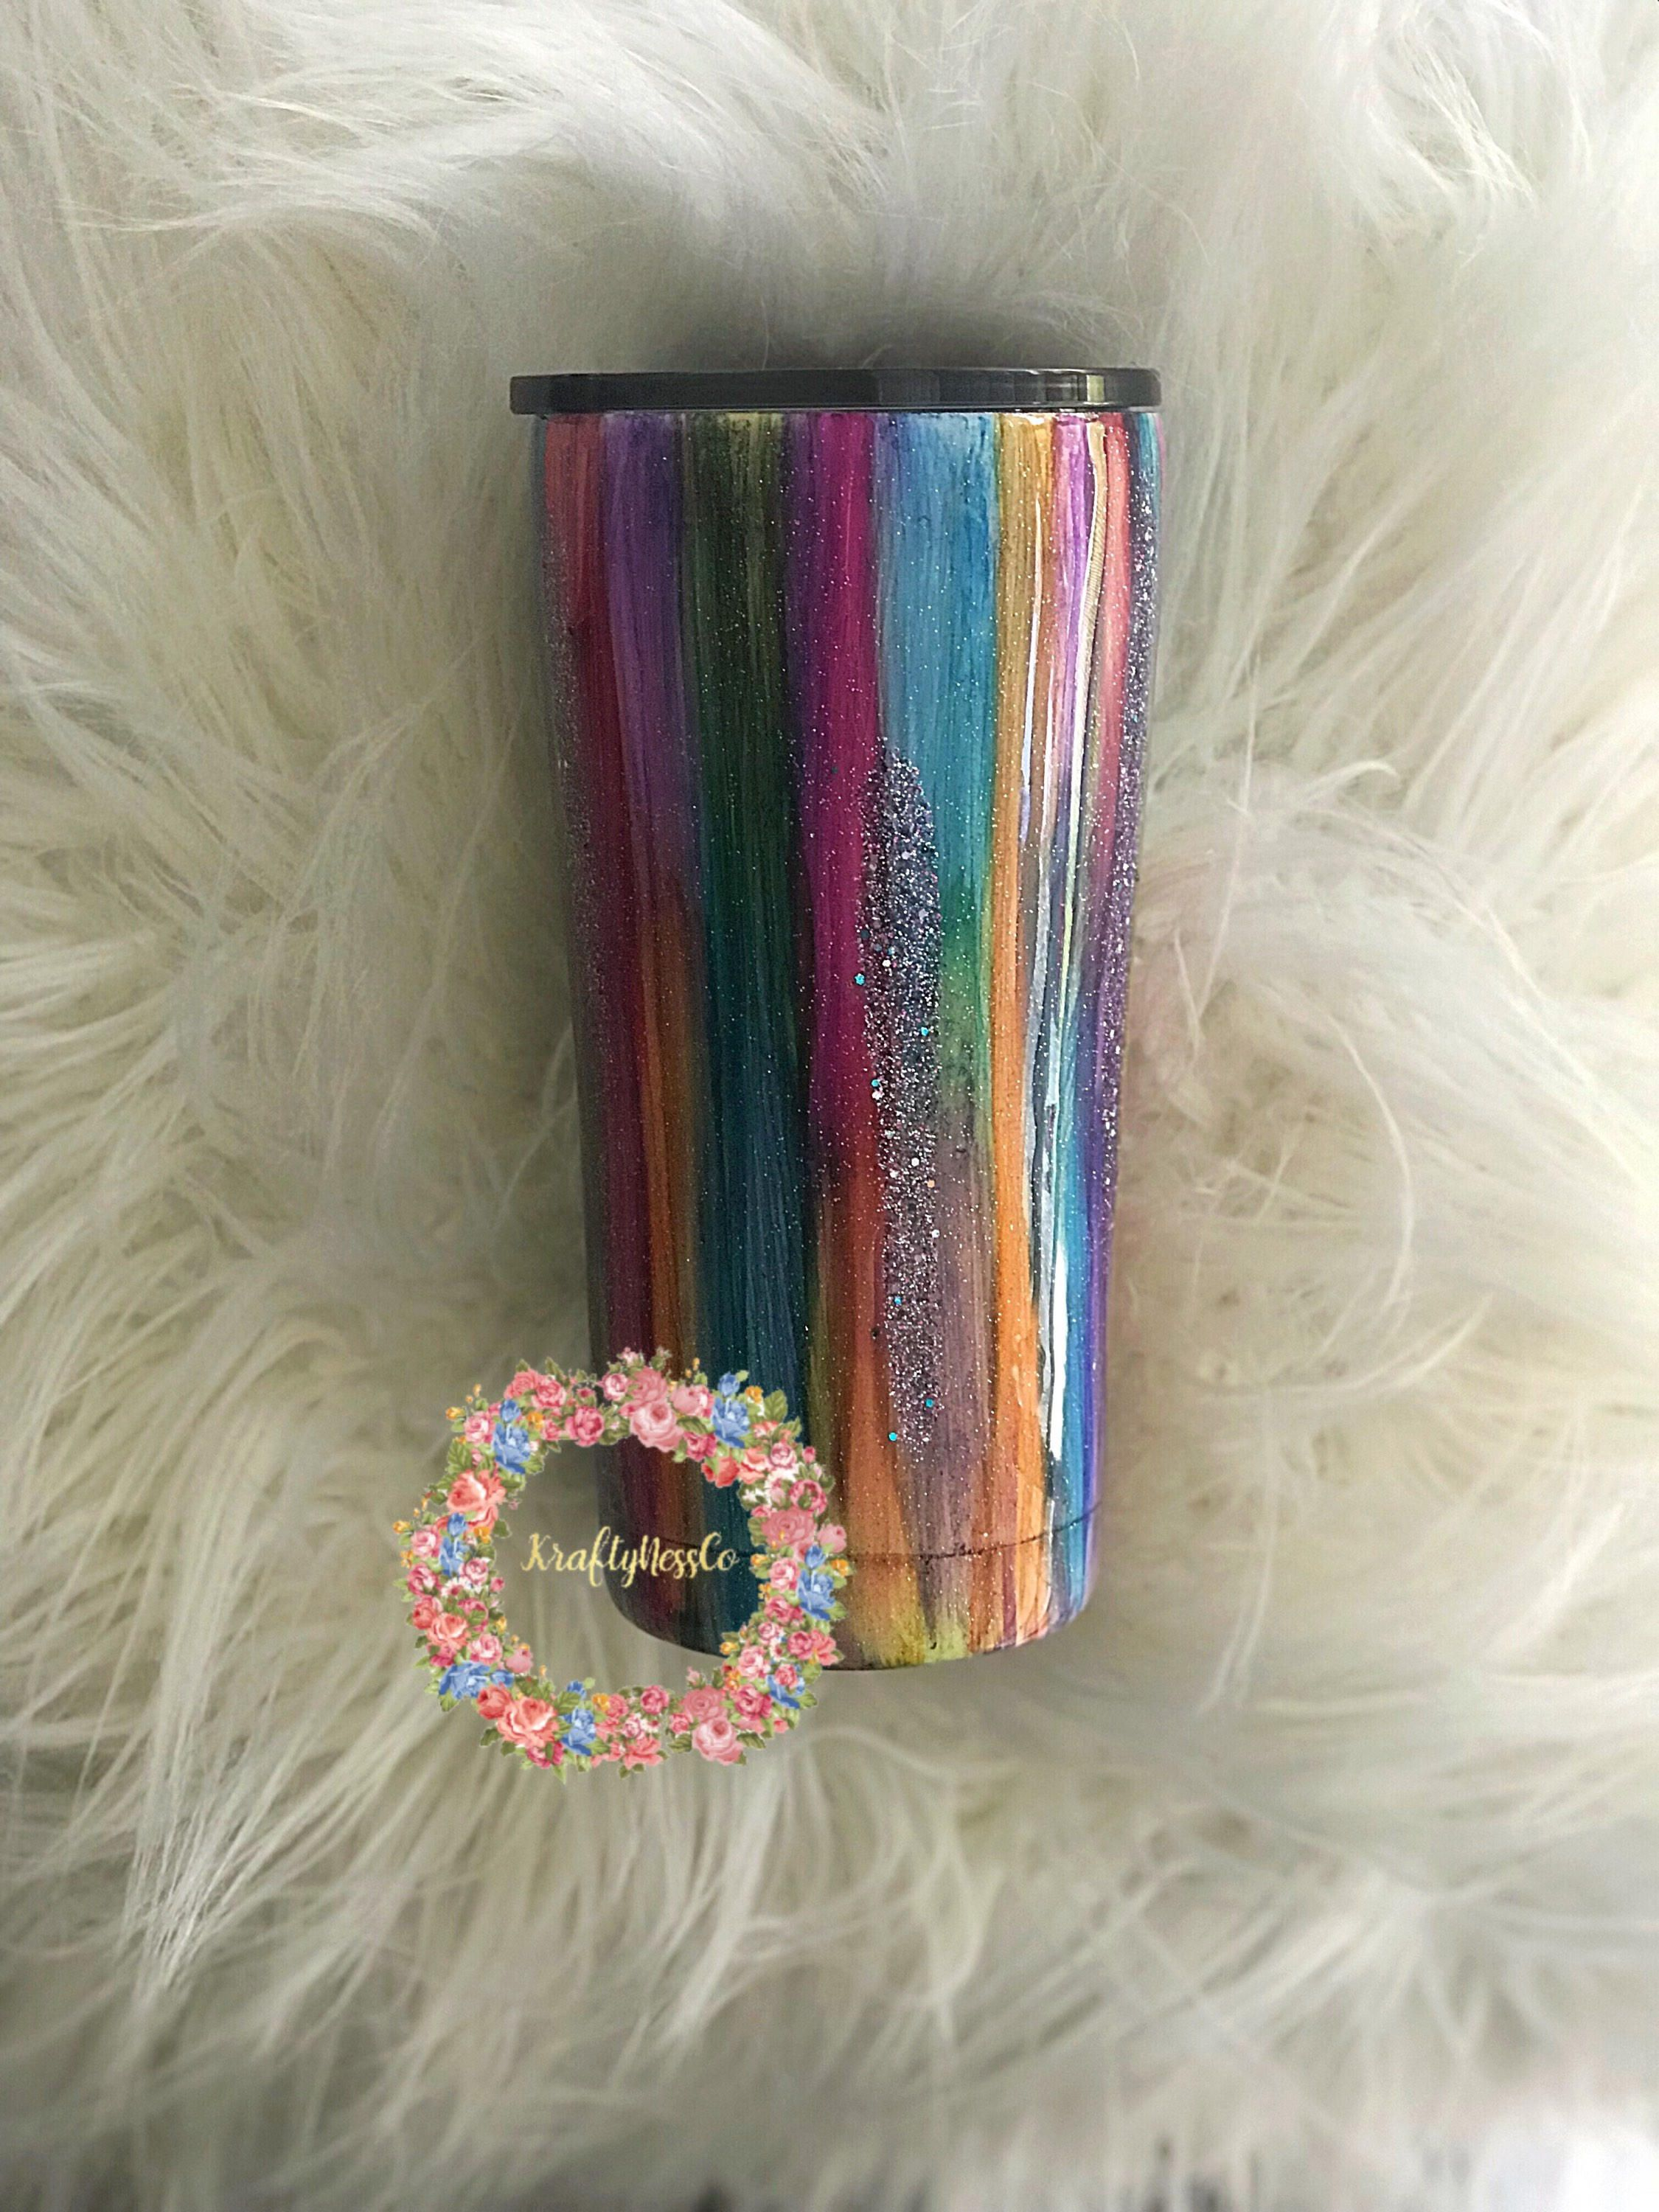 f8c3916a54c Multi-colored Wood Grain Inspired Tumbler| Glitter Tumbler | Ready-to-Ship  Tumbler| Gift For Her| Travel Cup | Coffee Cup | Mothers Day Gift by  KraftyNessCo ...